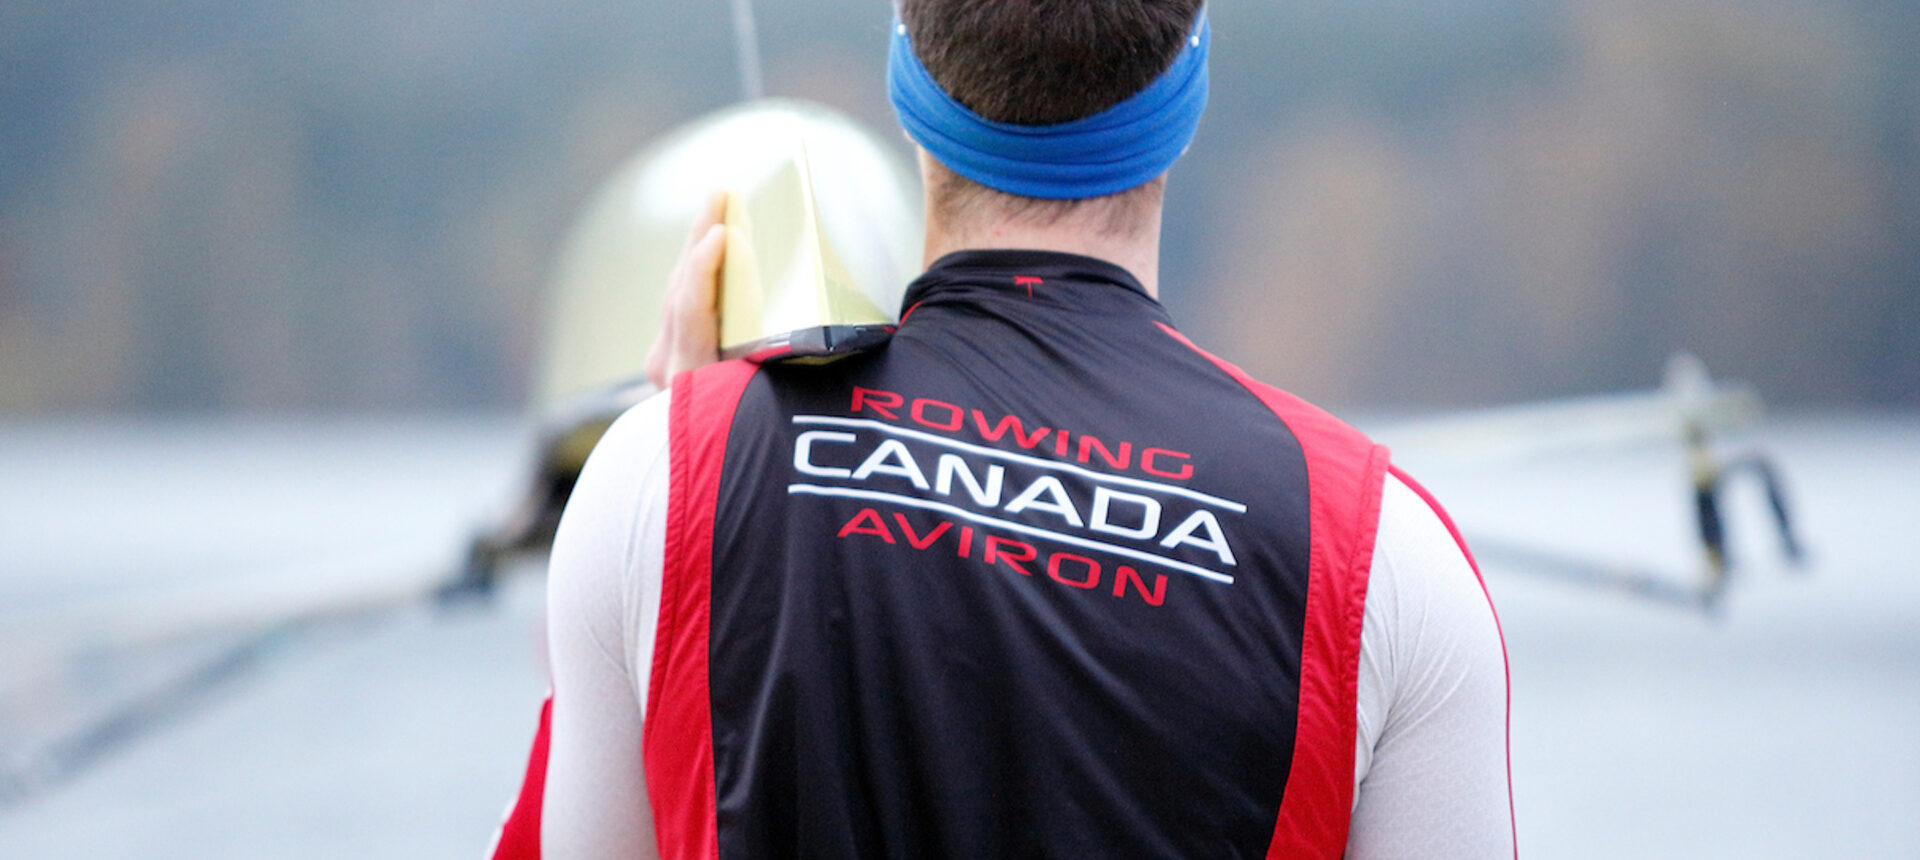 RCA Rules of Racing Review Working Group selected